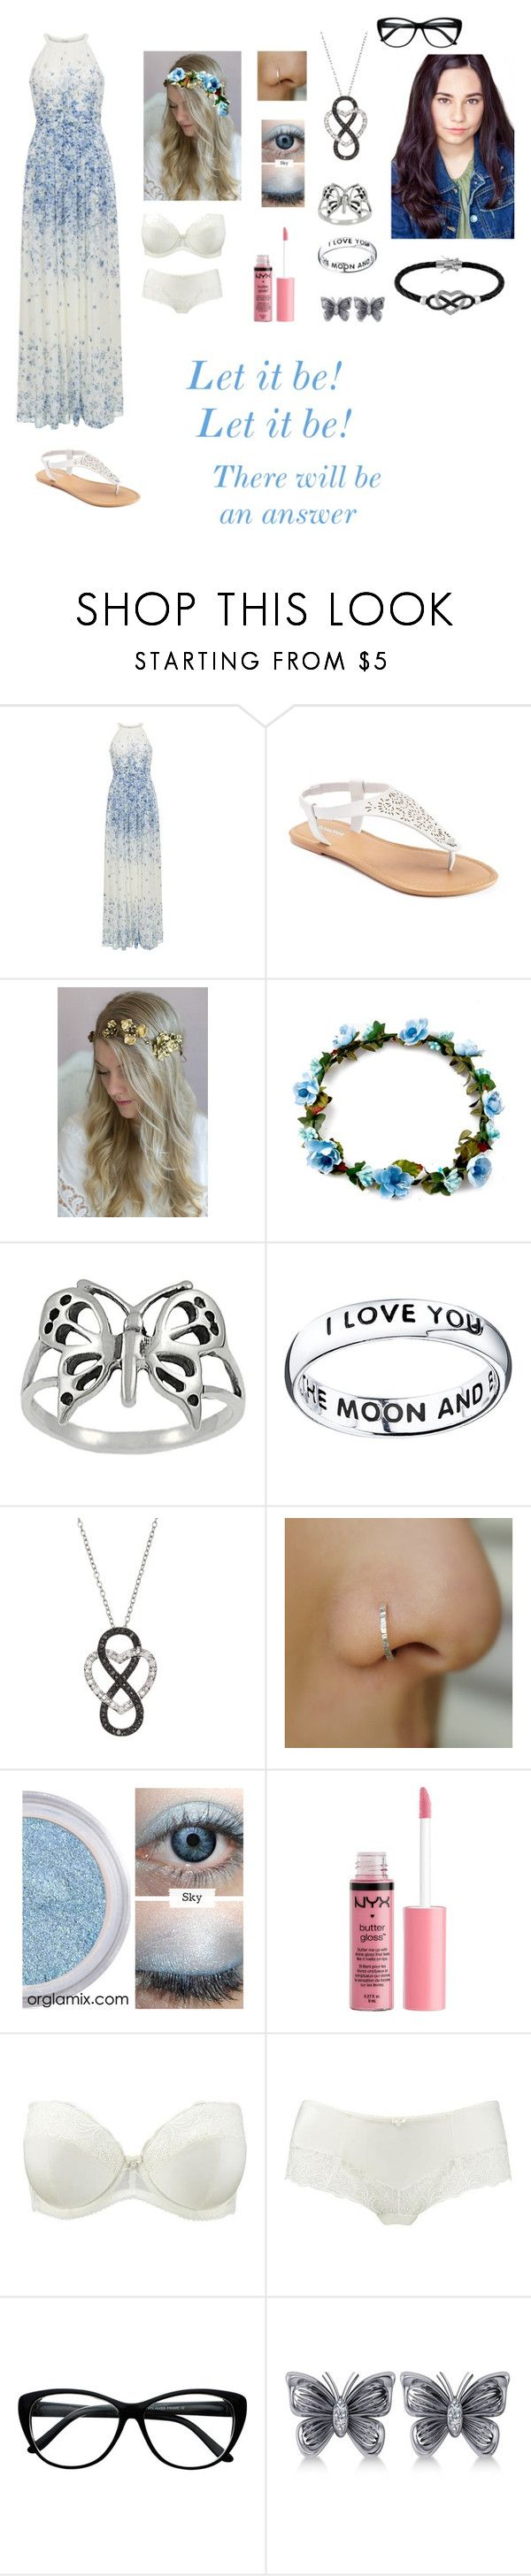 """Andrea Anderson-Let It Be-Glee OC"" by silverbellatrix ❤ liked on Polyvore featuring Hobbs, SONOMA Goods for Life, Twigs & Honey, Journee Collection, Footnotes, Charlotte Russe, Rigby & Peller, Allurez and Jewel Exclusive"